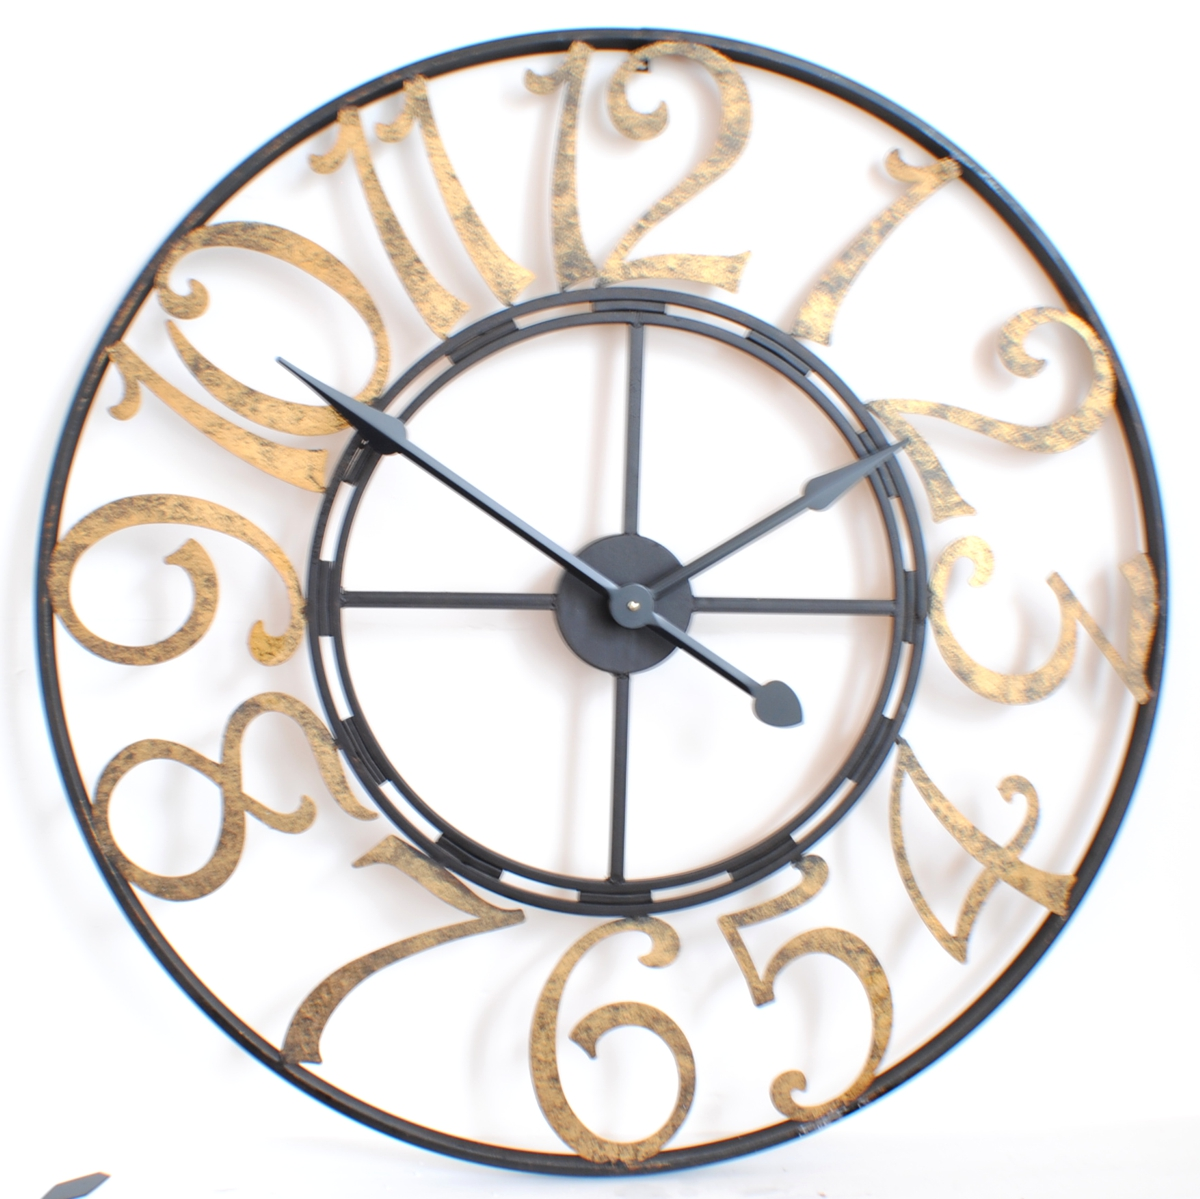 French numbers gold and black skeleton wall clock 90cm diameter